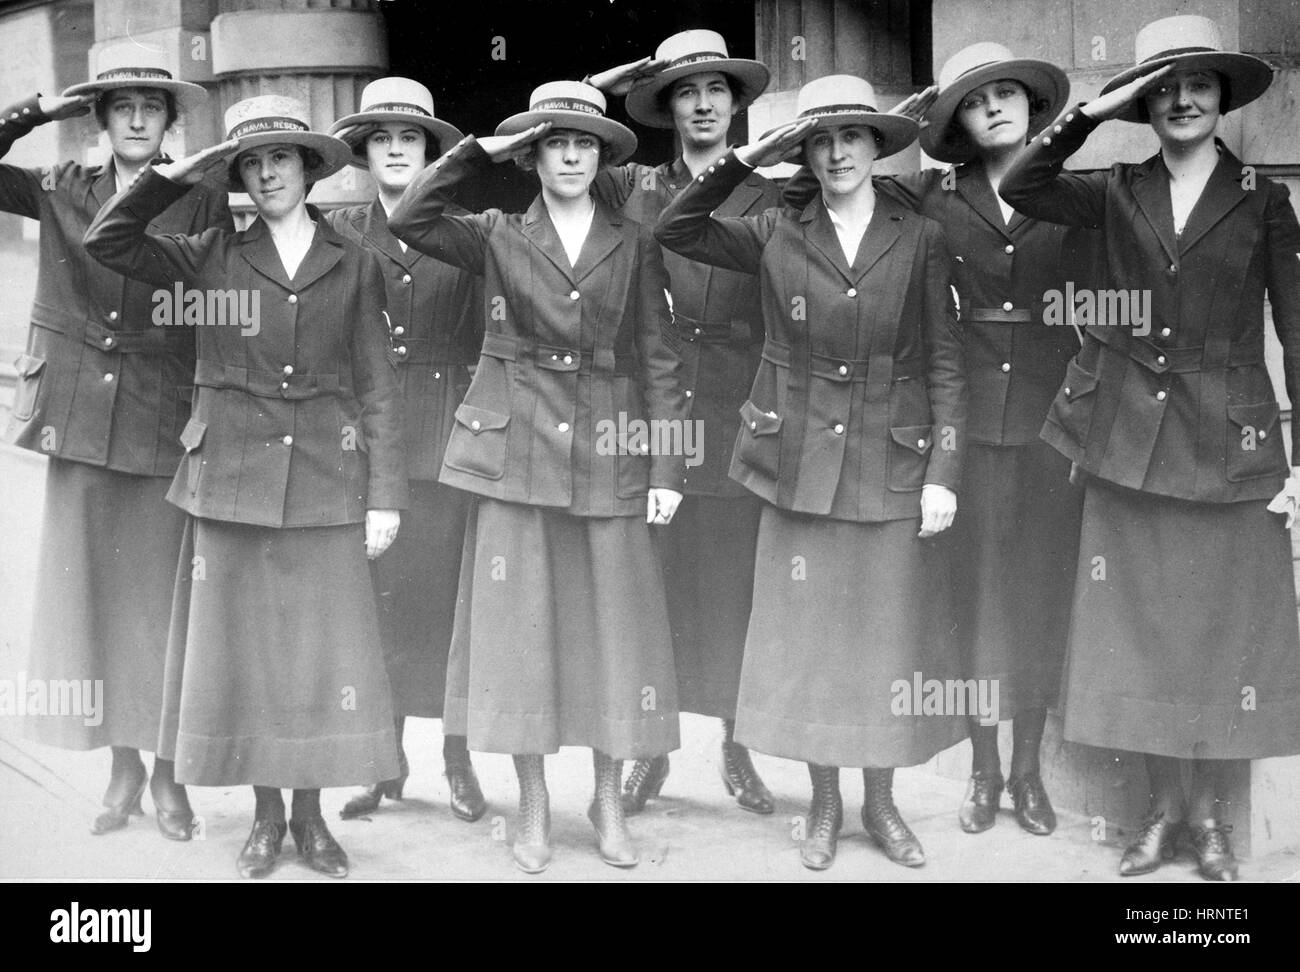 Yeomen Attached to the Naval Reserve, 1918 - Stock Image